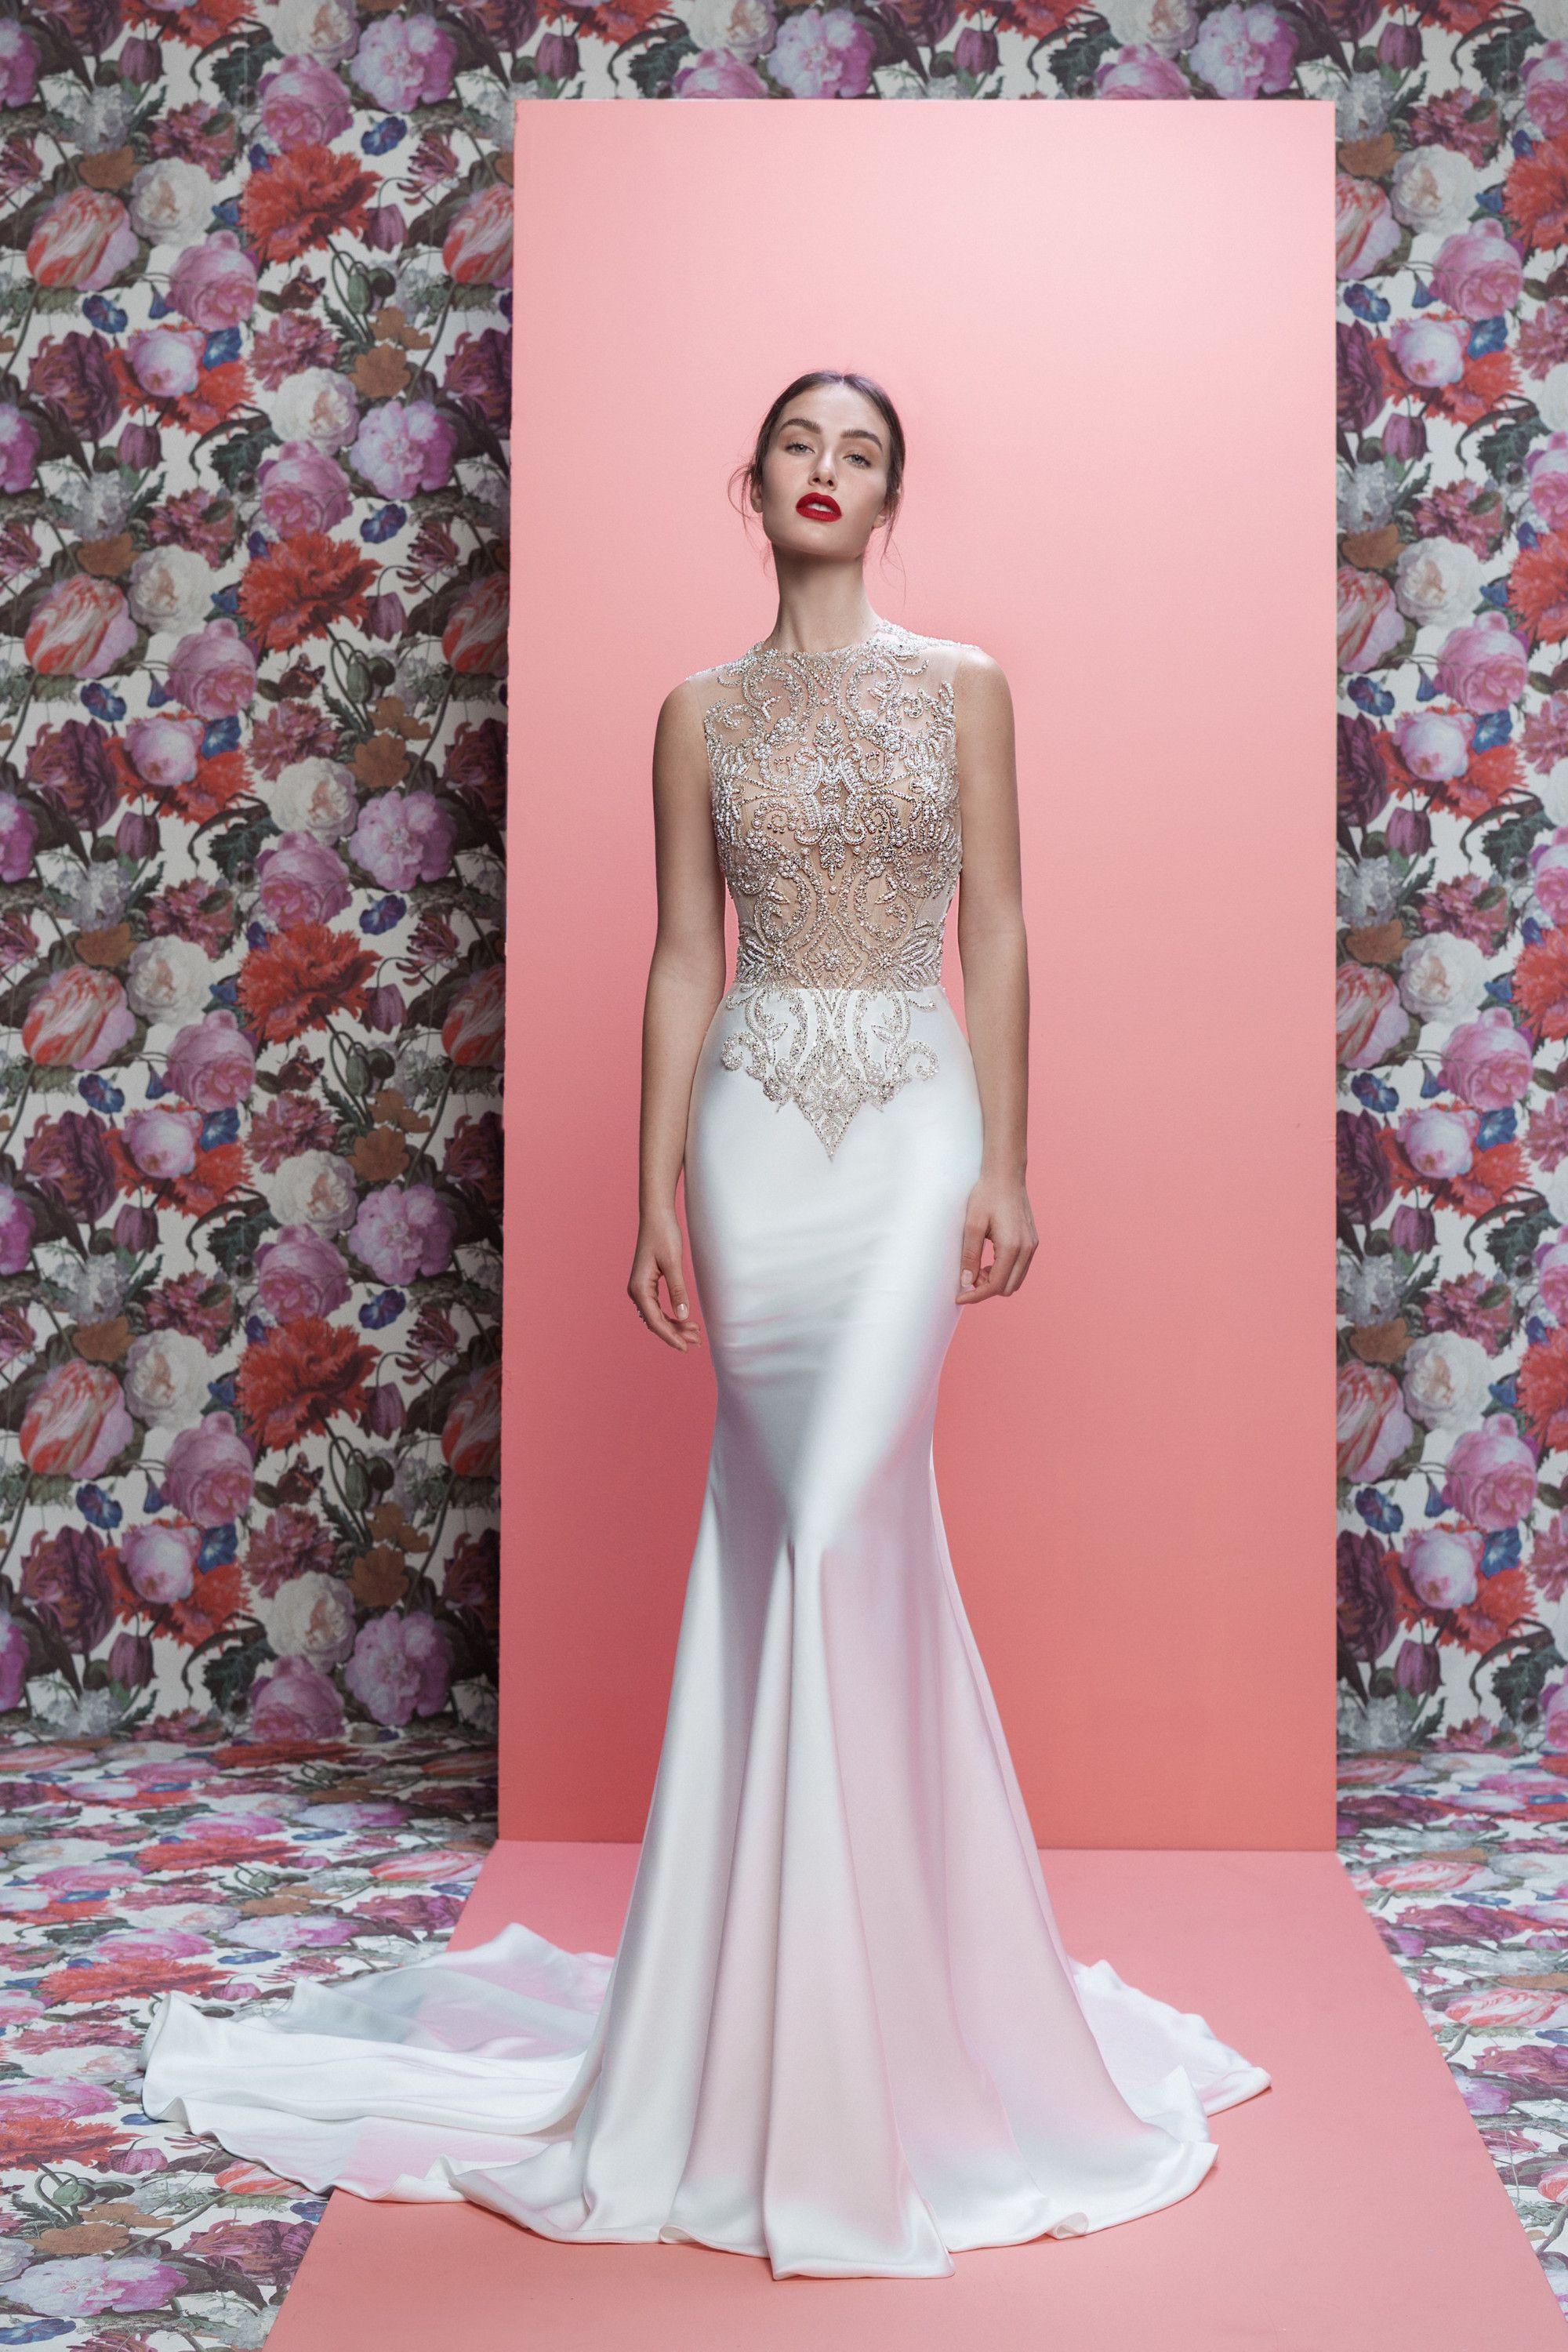 Galia lahav wedding dressweddingdress wedding in